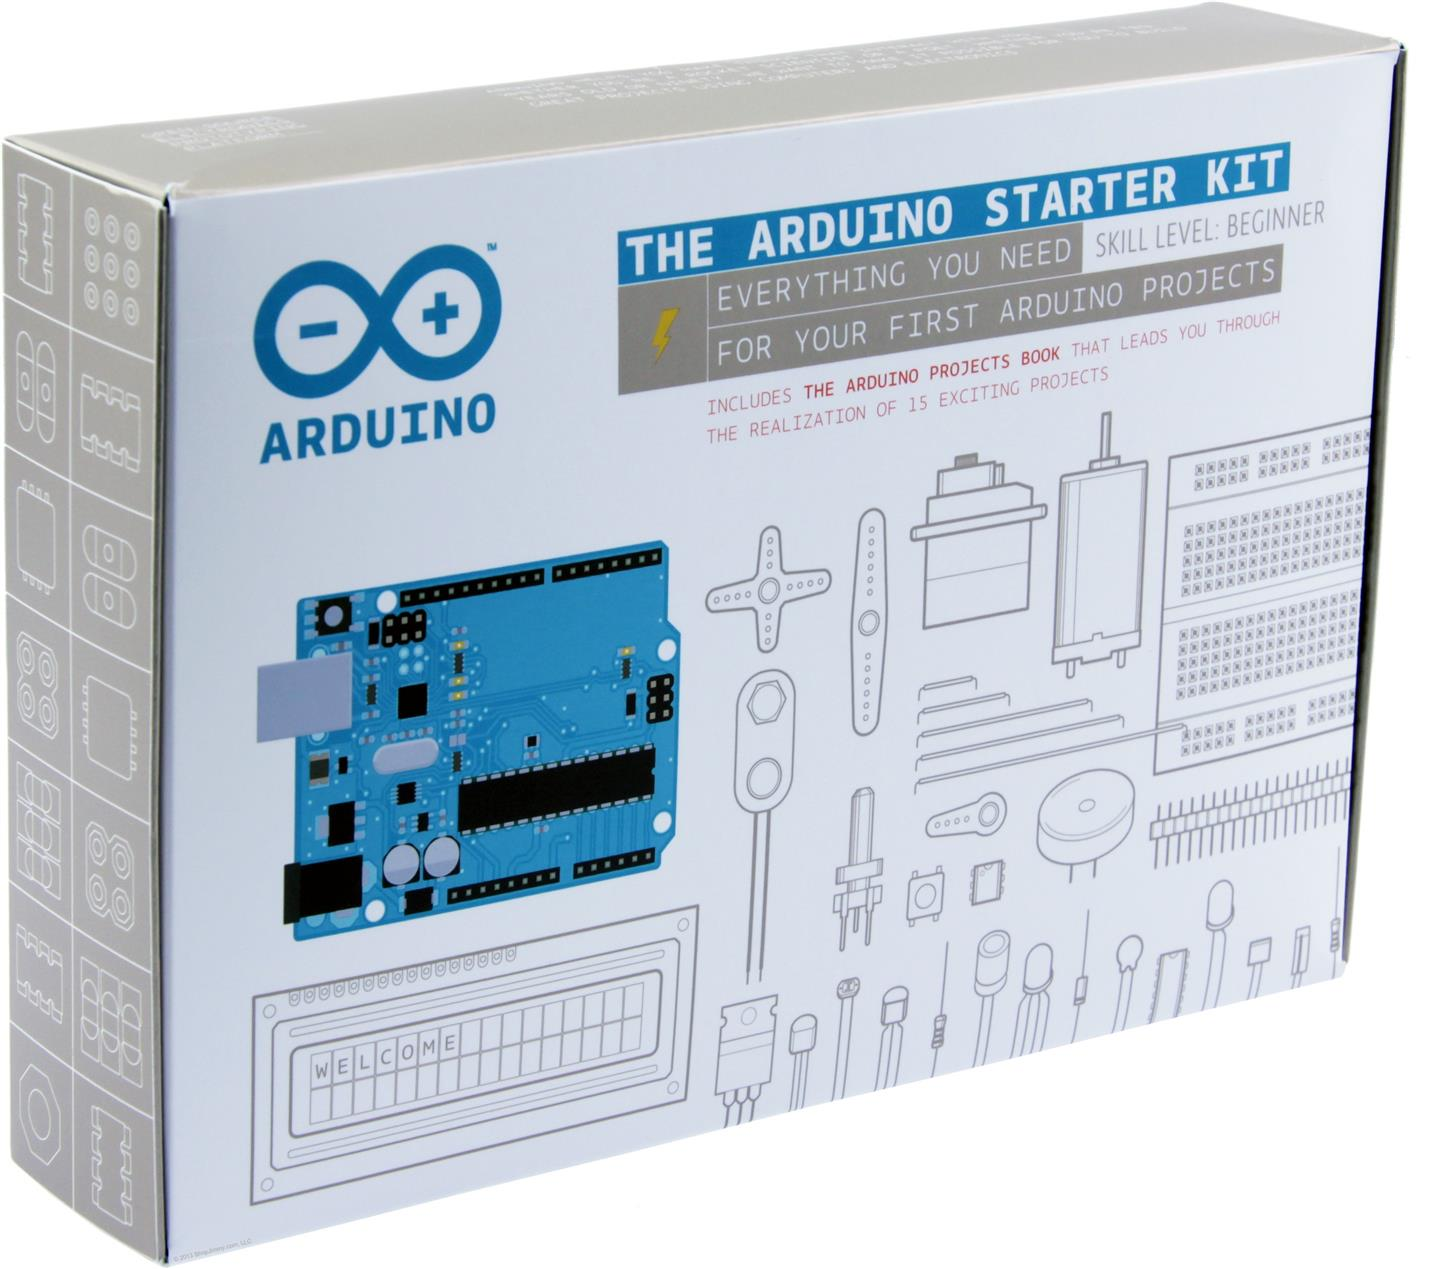 Arduino Starter Kit (For Beginner Skill Level) [By WallE Grocery]